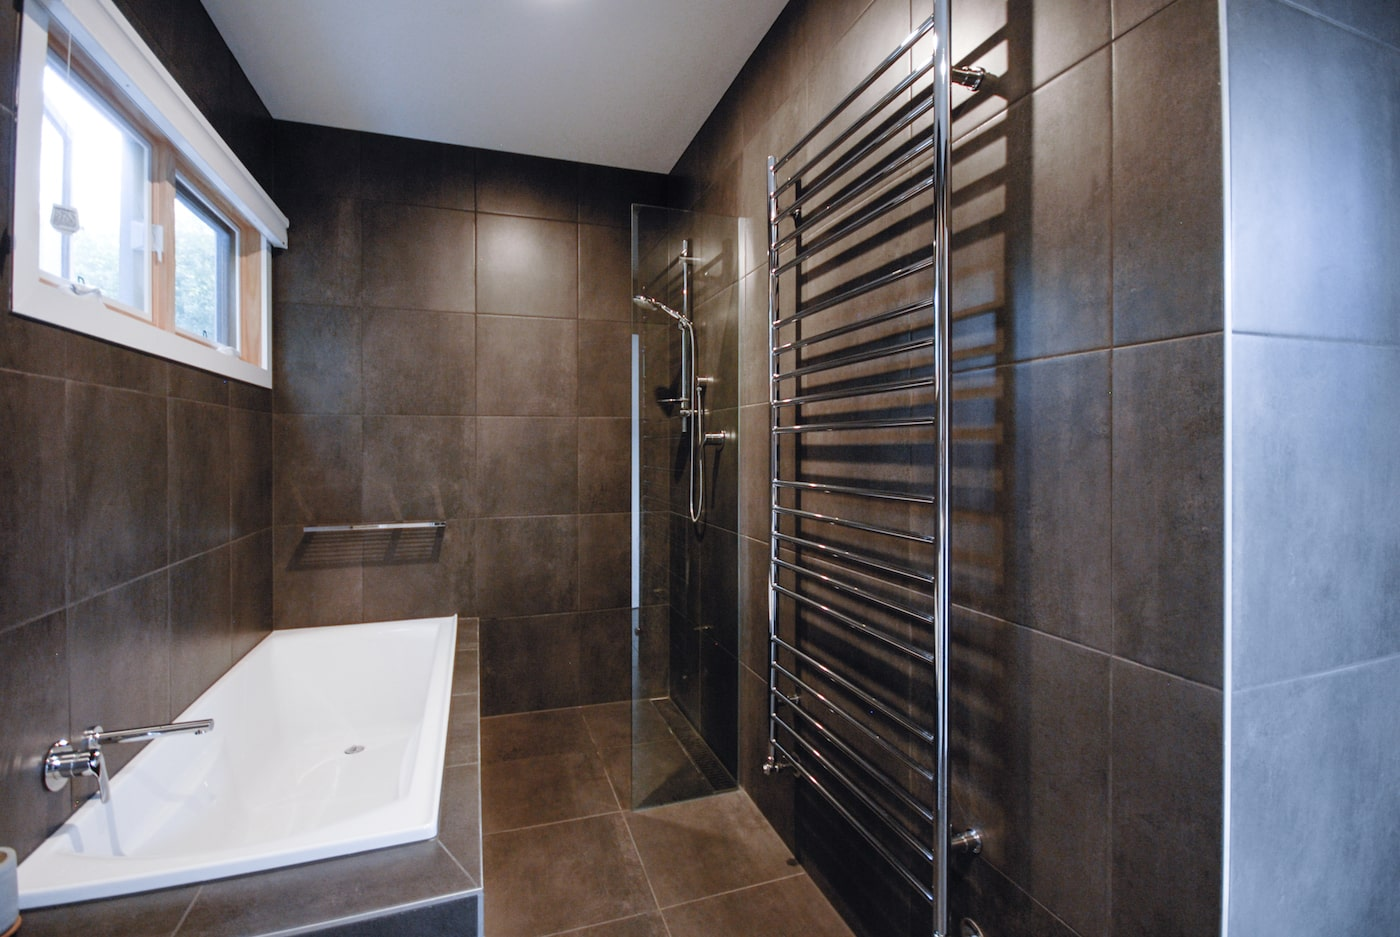 View of bath and shower with dark grey tiled walls and floor